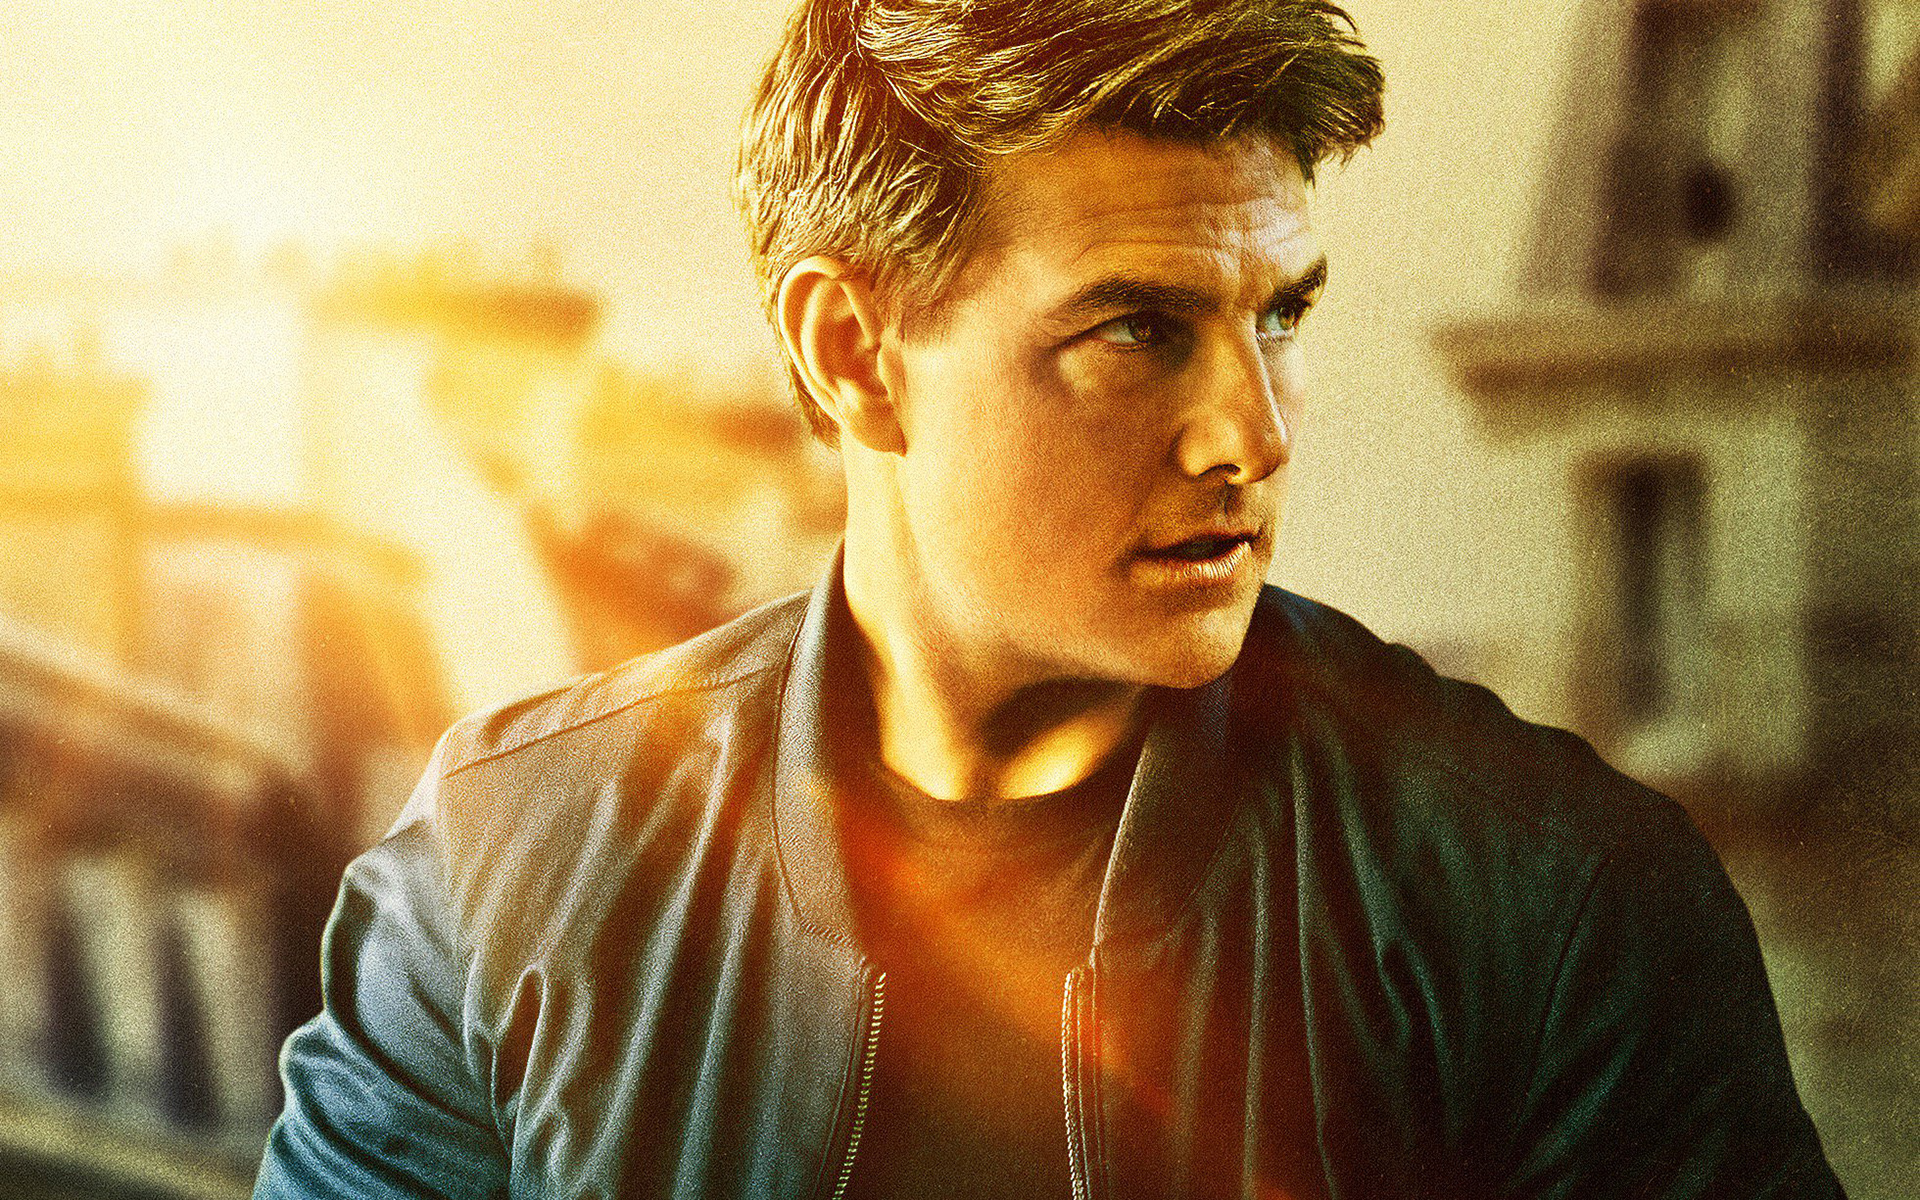 Mission Impossible Fallout Tom Cruise Wallpapers HD Wallpapers 1920x1200